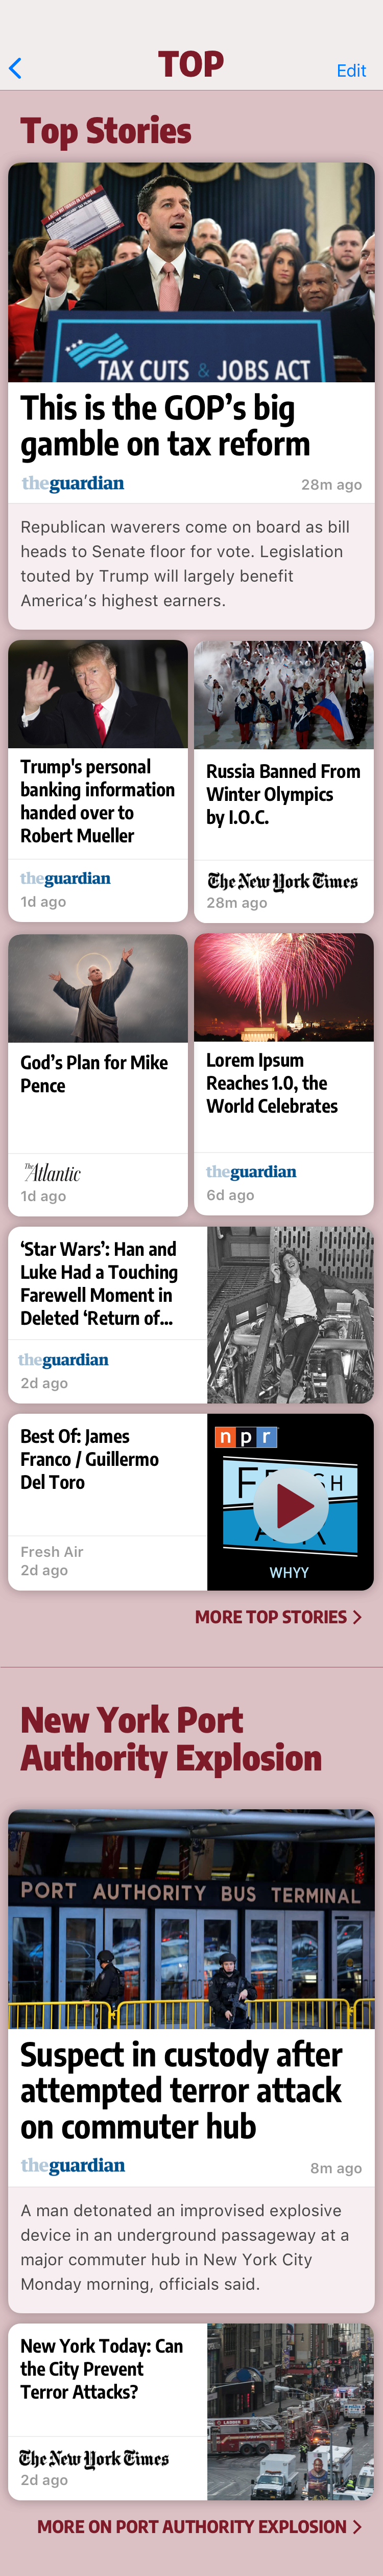 Screenshot: A page of top news